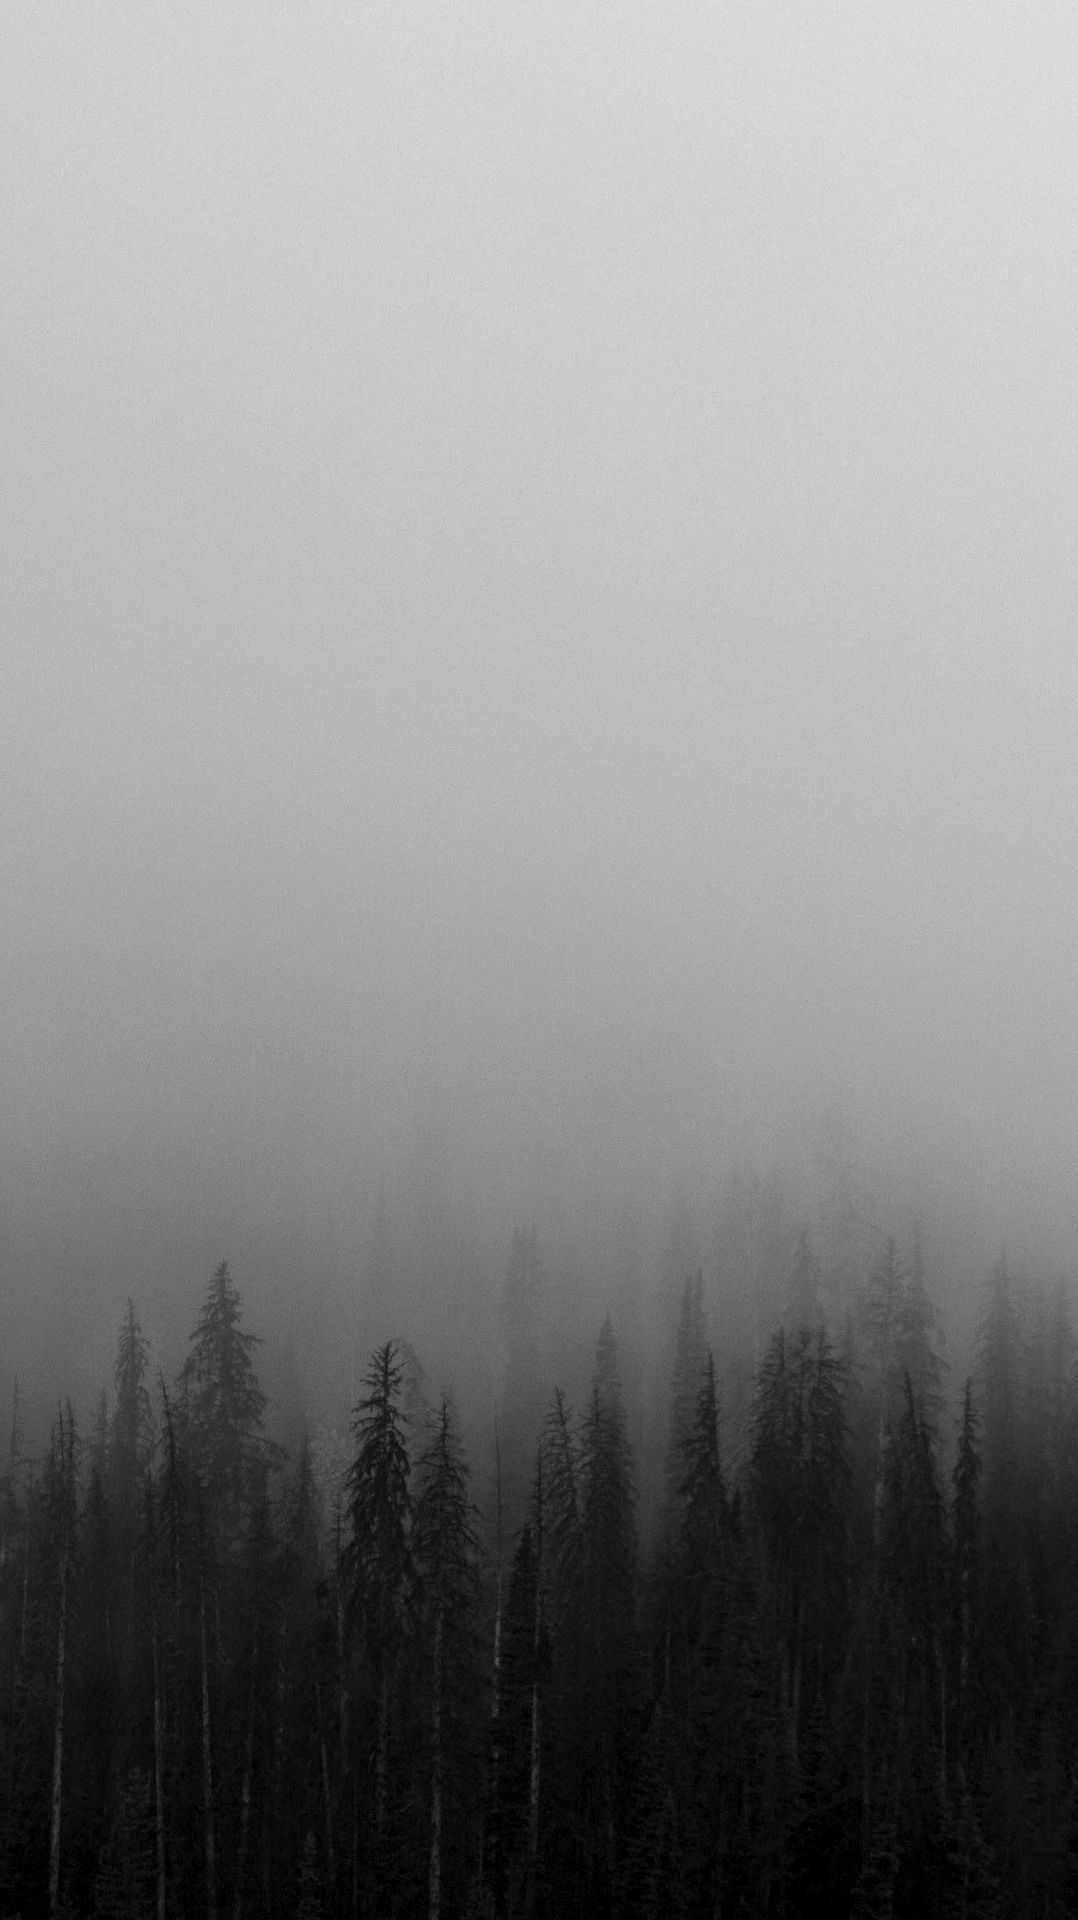 Black-and-White-Mist-Forests-Wallpaper | iPhone Wallpapers in 2019 | Black, white wallpaper ...